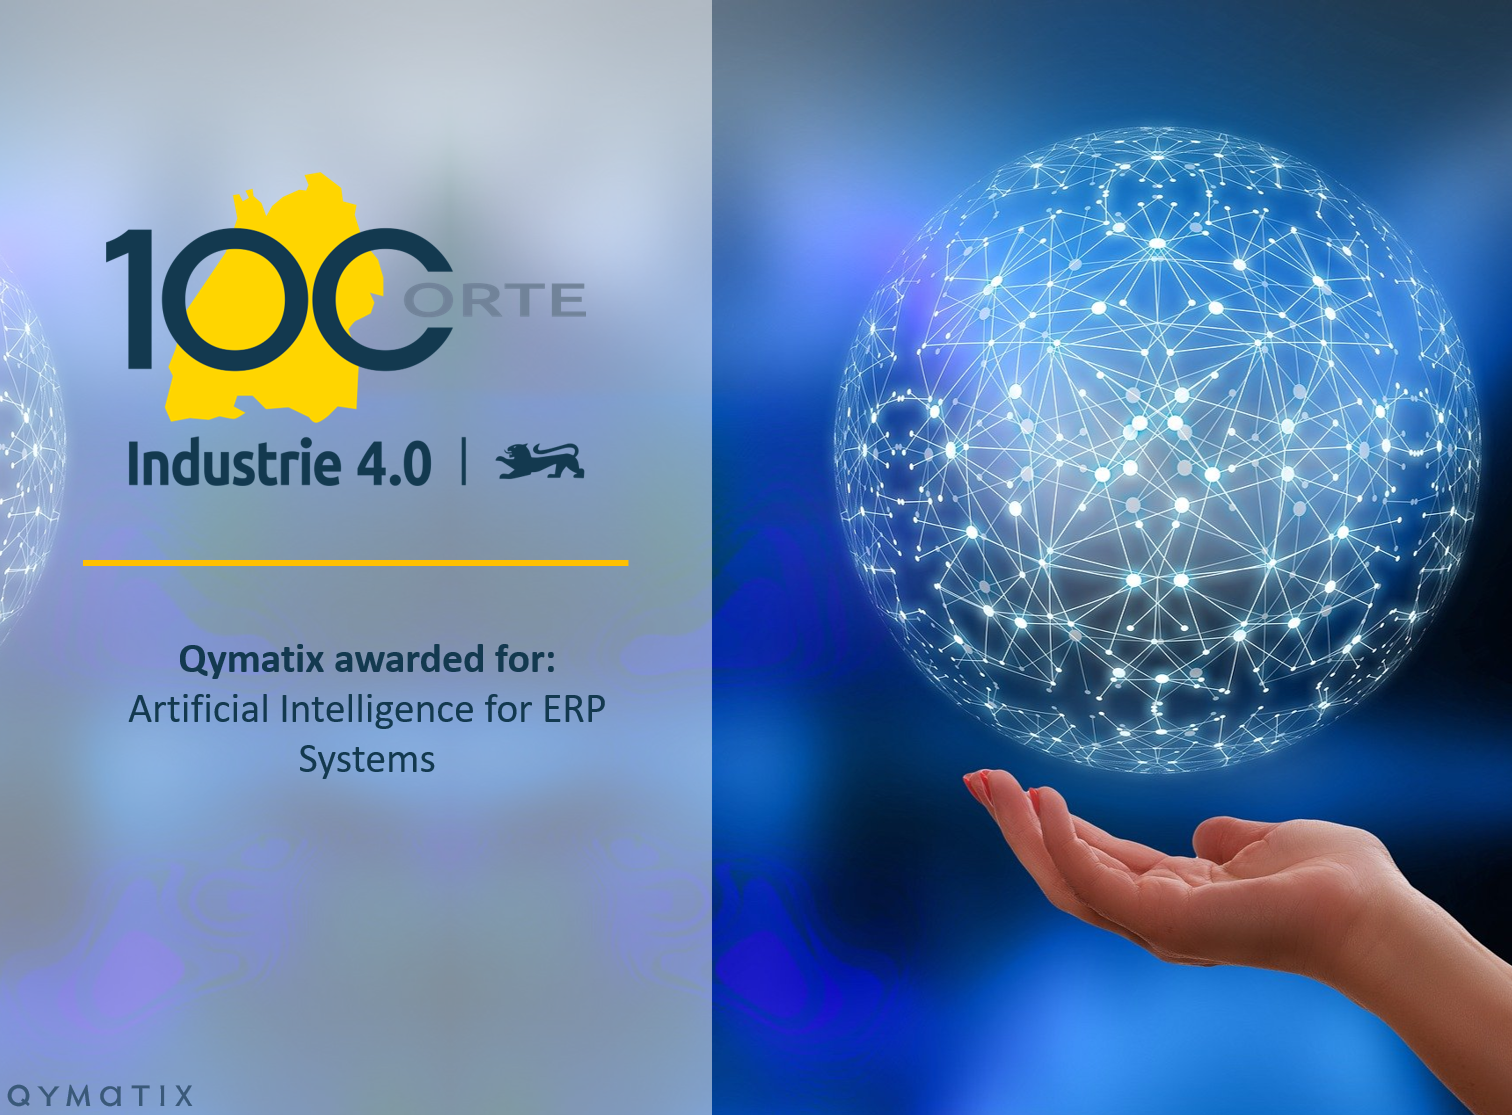 Qymatix Artificial Intelligence for ERP Systems